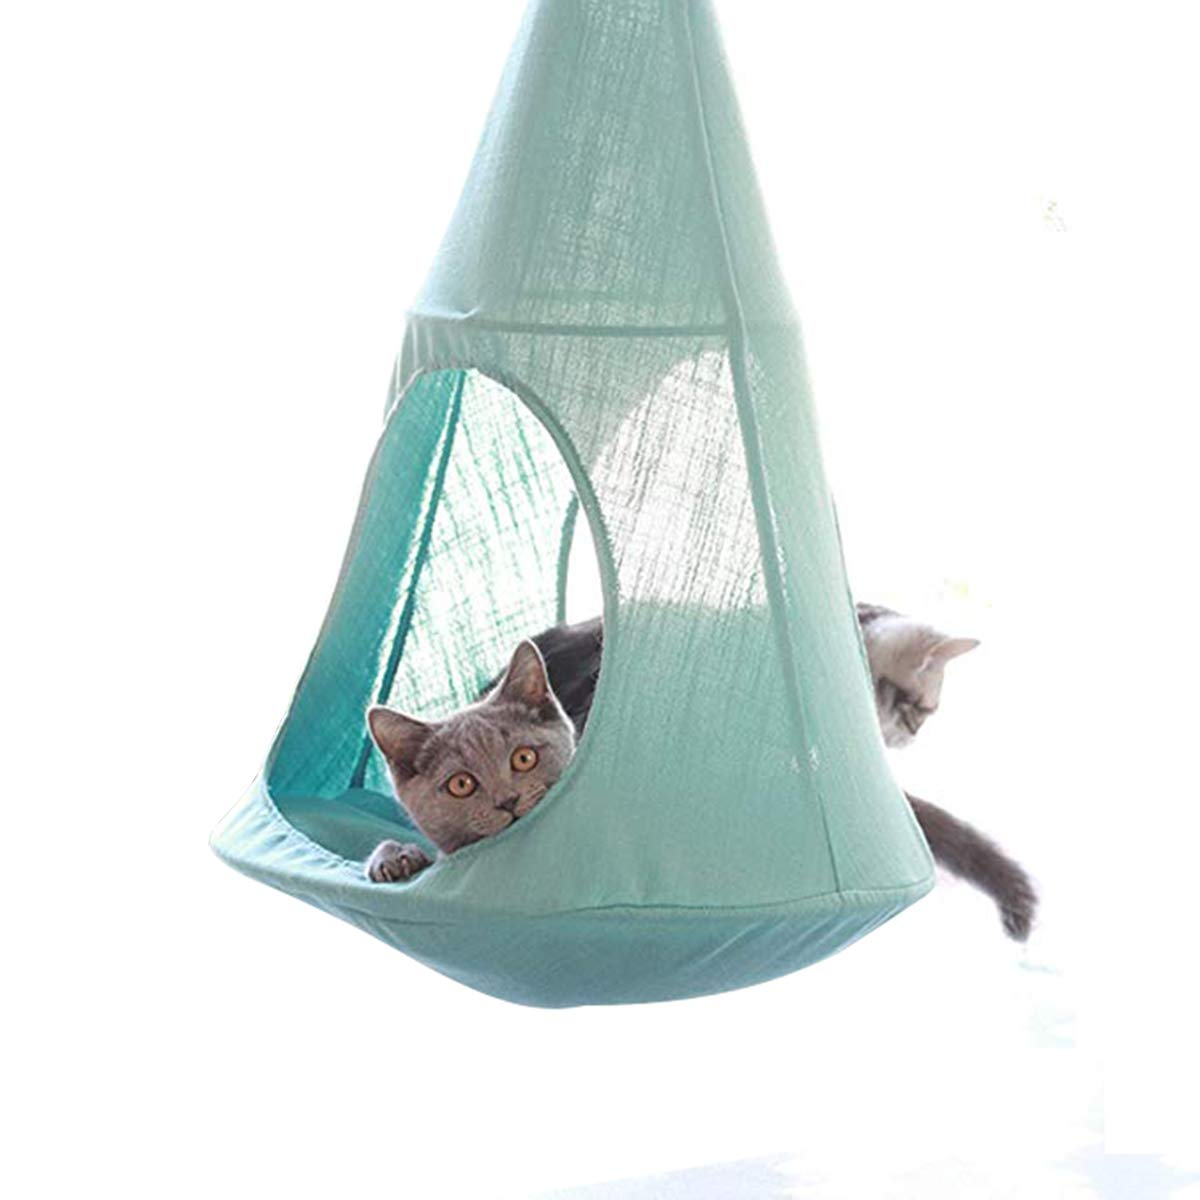 Amazon.com : ALXDR Cat Hammock Hanging Type Kitten Bed Detachable Pet Linen Sling Attic Multi-useage Breathable Loft for Summer Living, Green : Garden & ...